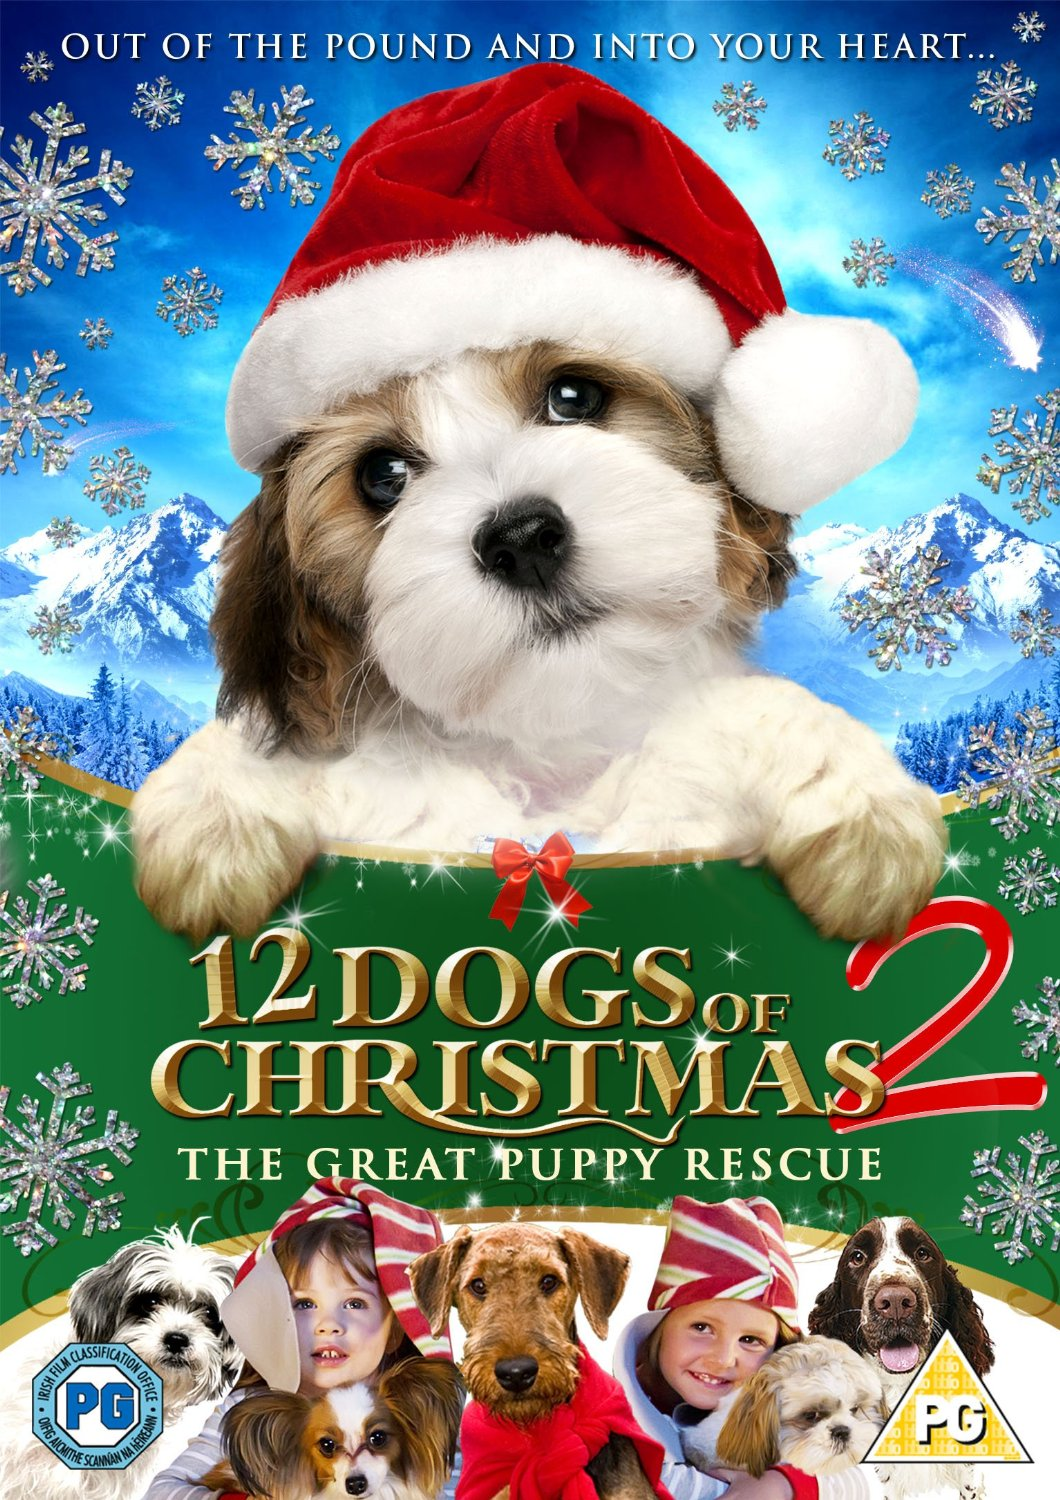 12 Dogs Of Christmas 2 - Great Puppy Rescue (DVD)